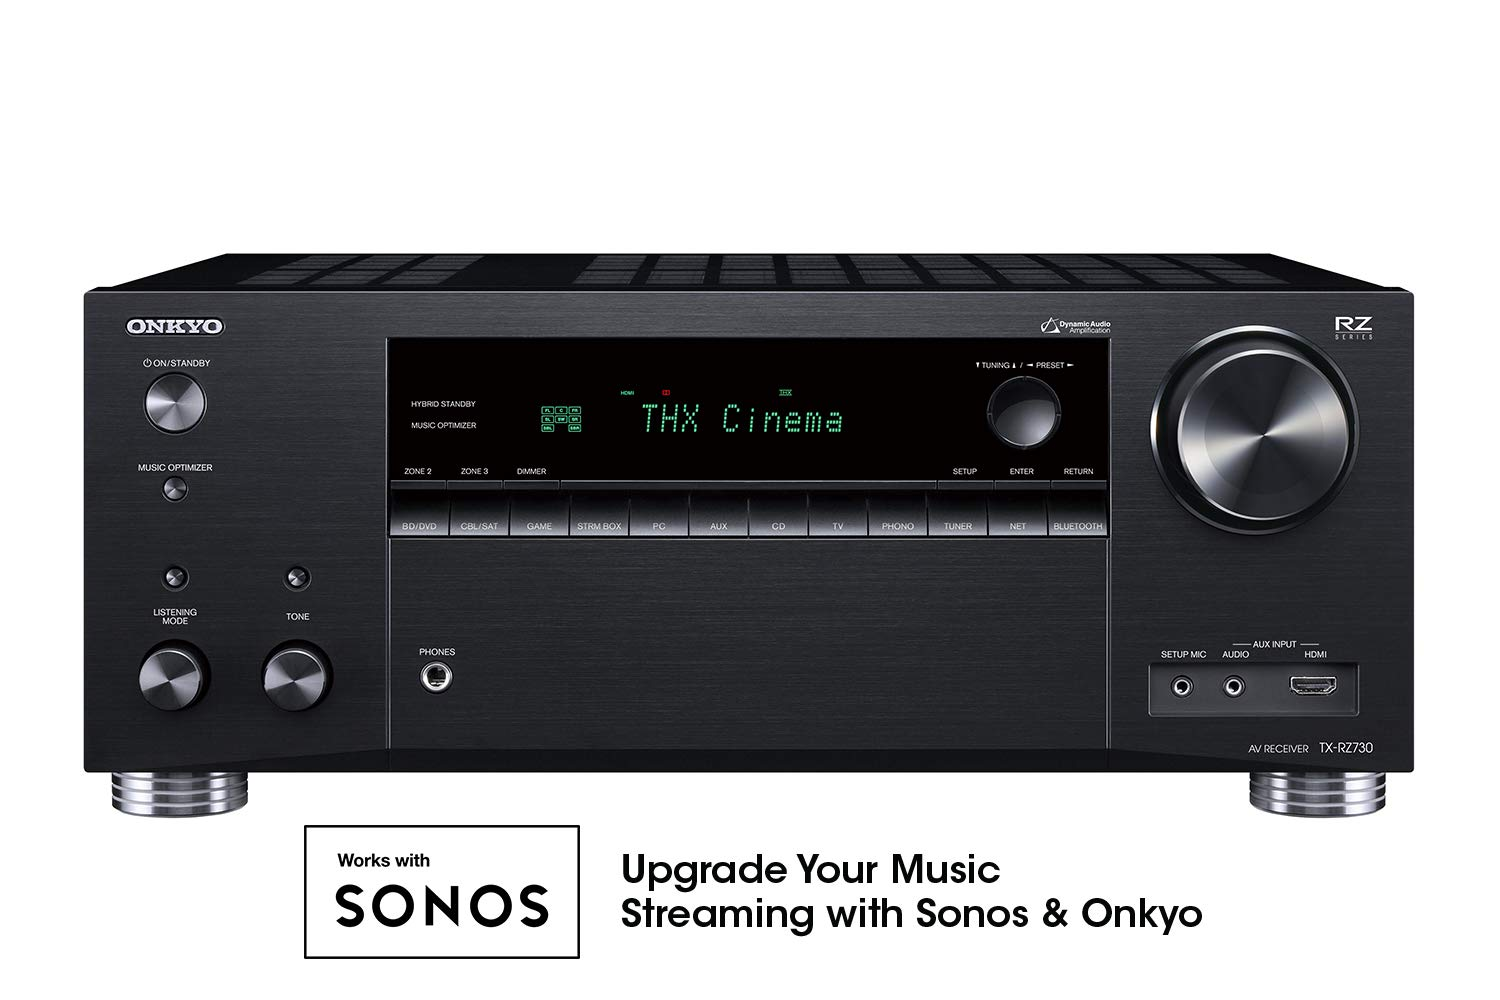 Onkyo TX-RZ730 9.2 Channel 4k Network A/V Receiver Black by Onkyo